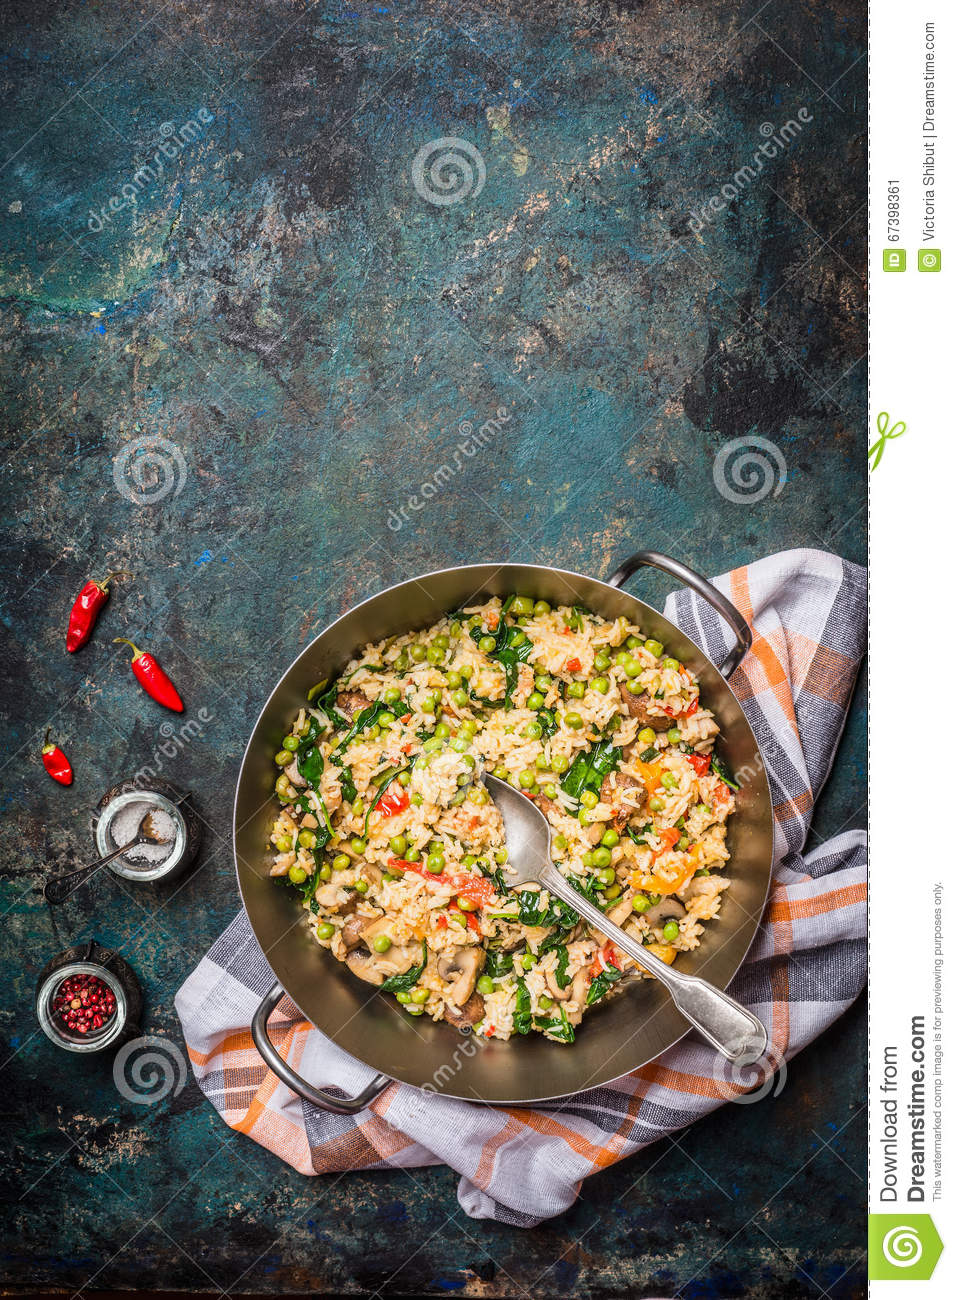 Download Vegetarian Food Background With Rice Vegetables Dish And Spices, Top View Stock Image - Image of pepper, healthy: 67398361